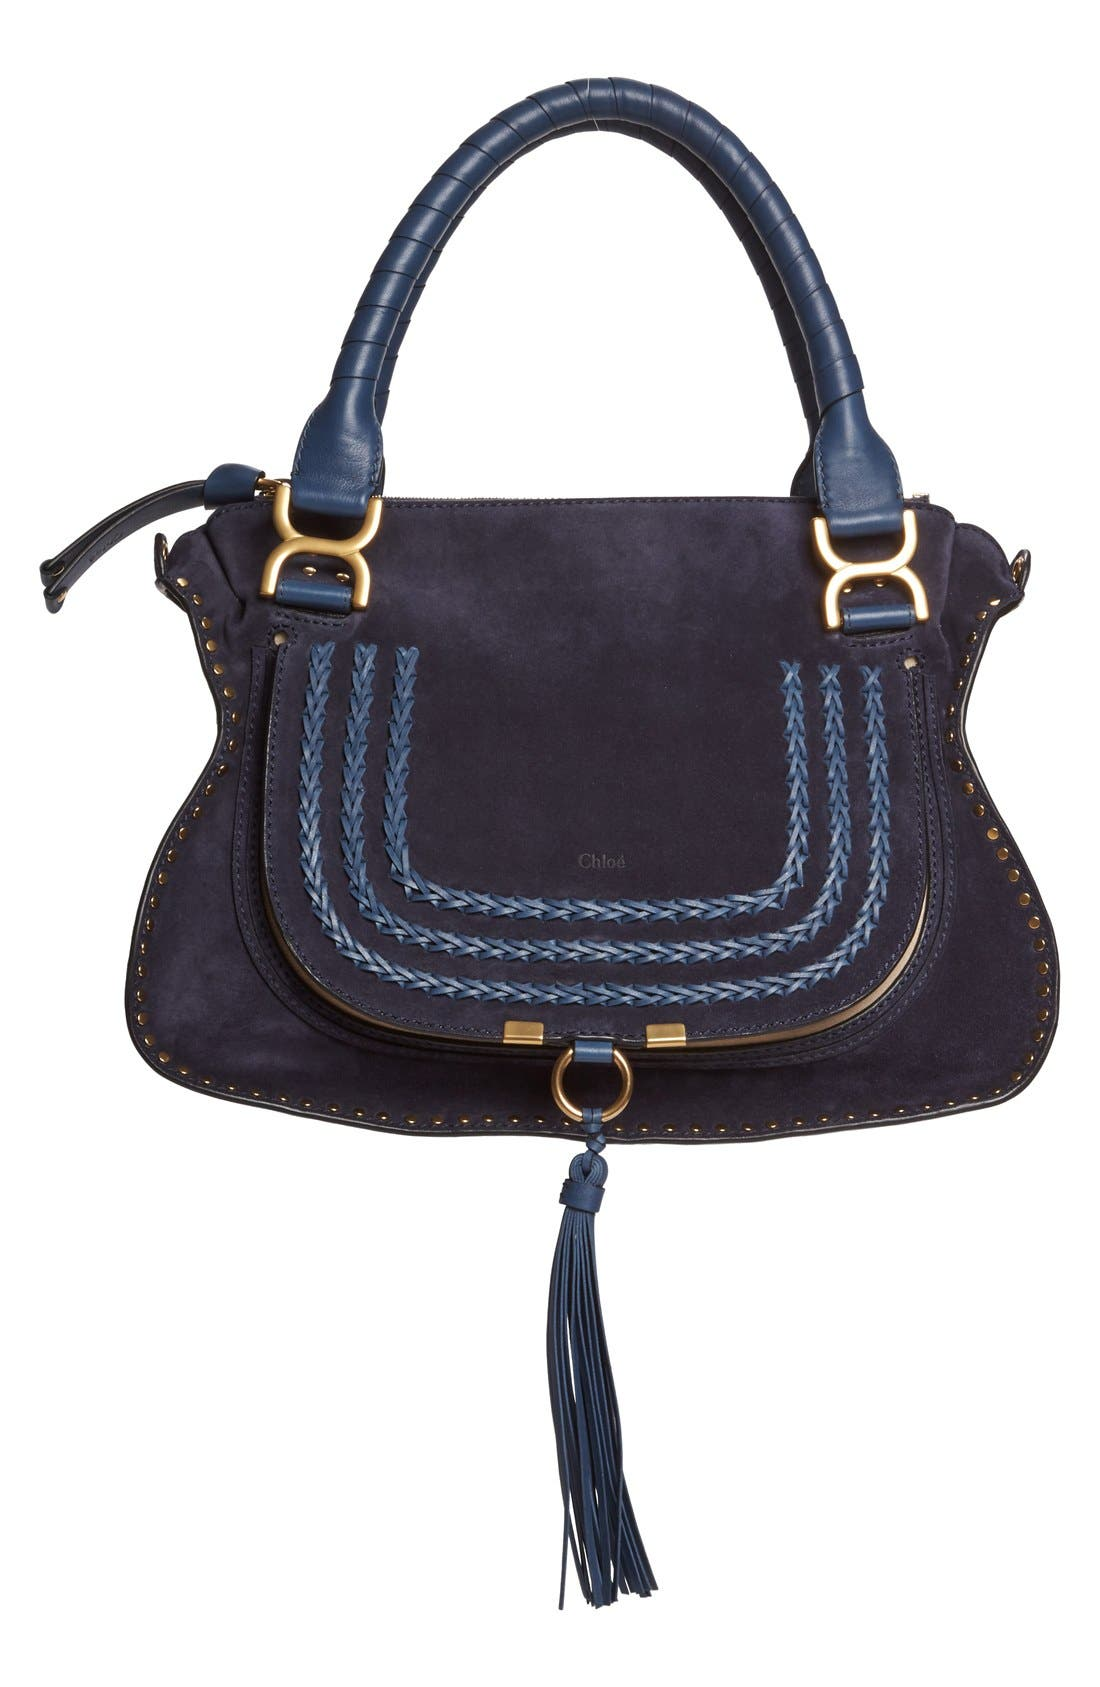 CHLOÉ 'Medium Marcie' Suede Satchel